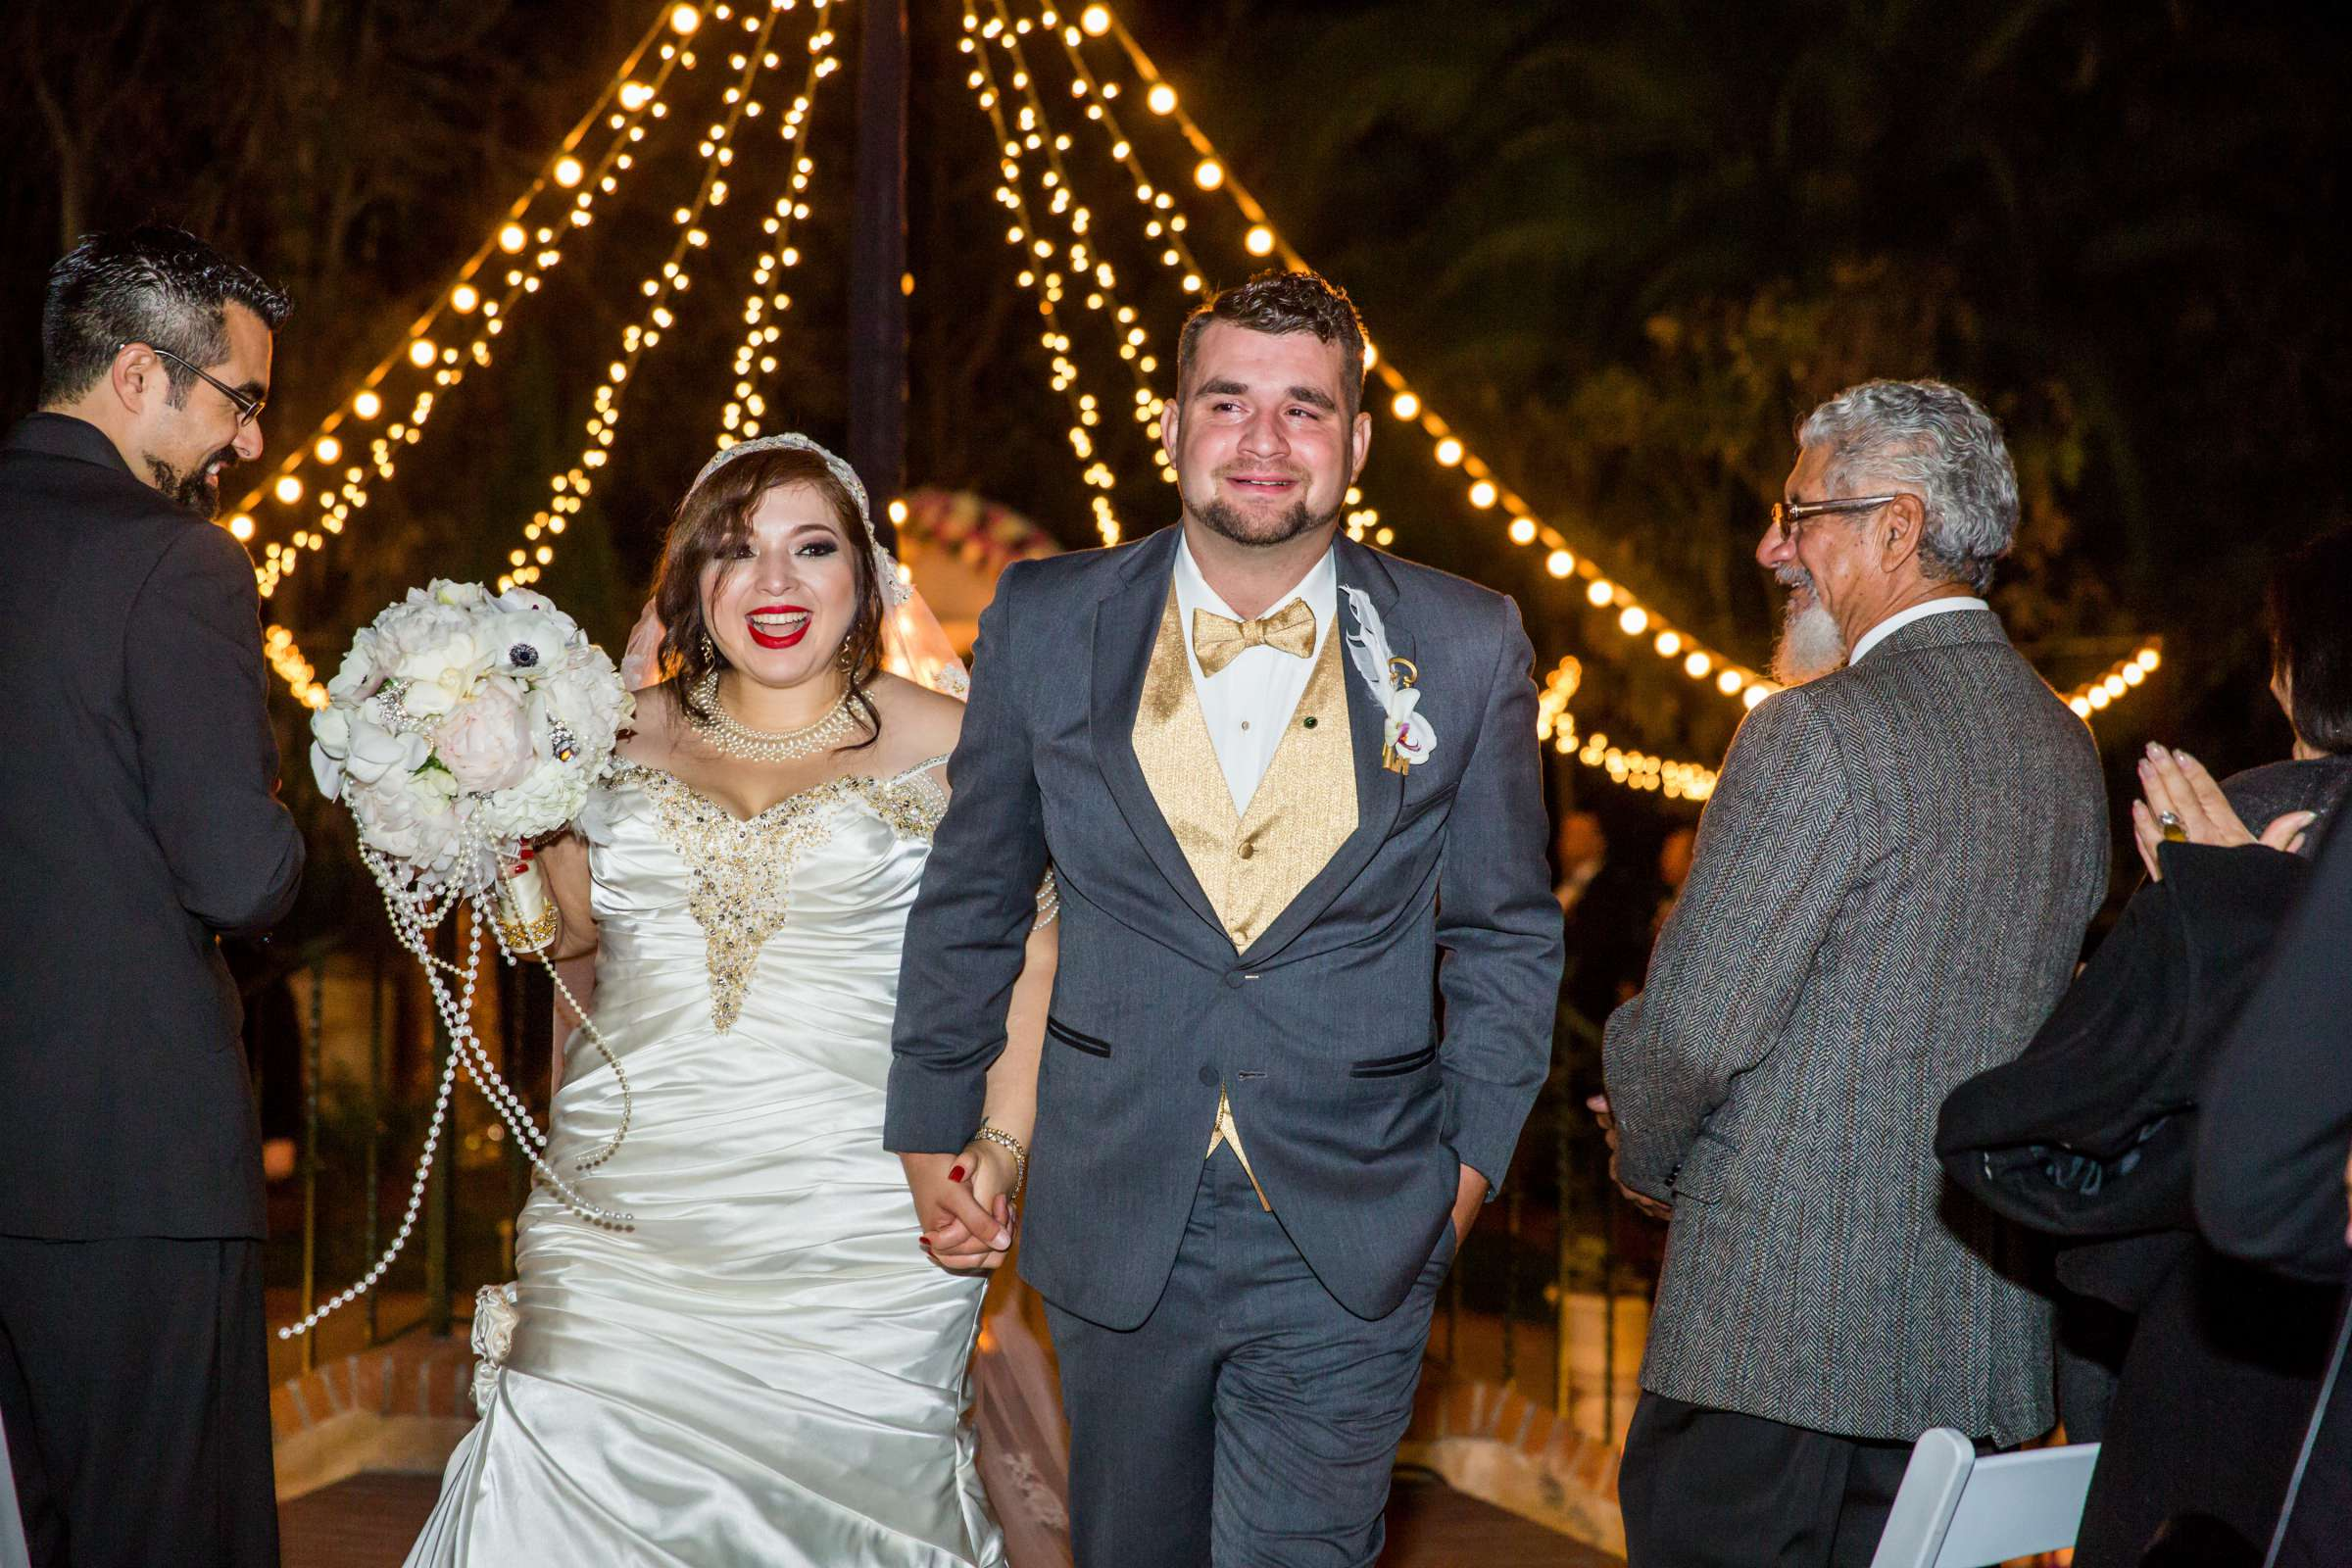 The Prado Wedding coordinated by Breezy Day Weddings, Aalis and Michael Wedding Photo #104 by True Photography